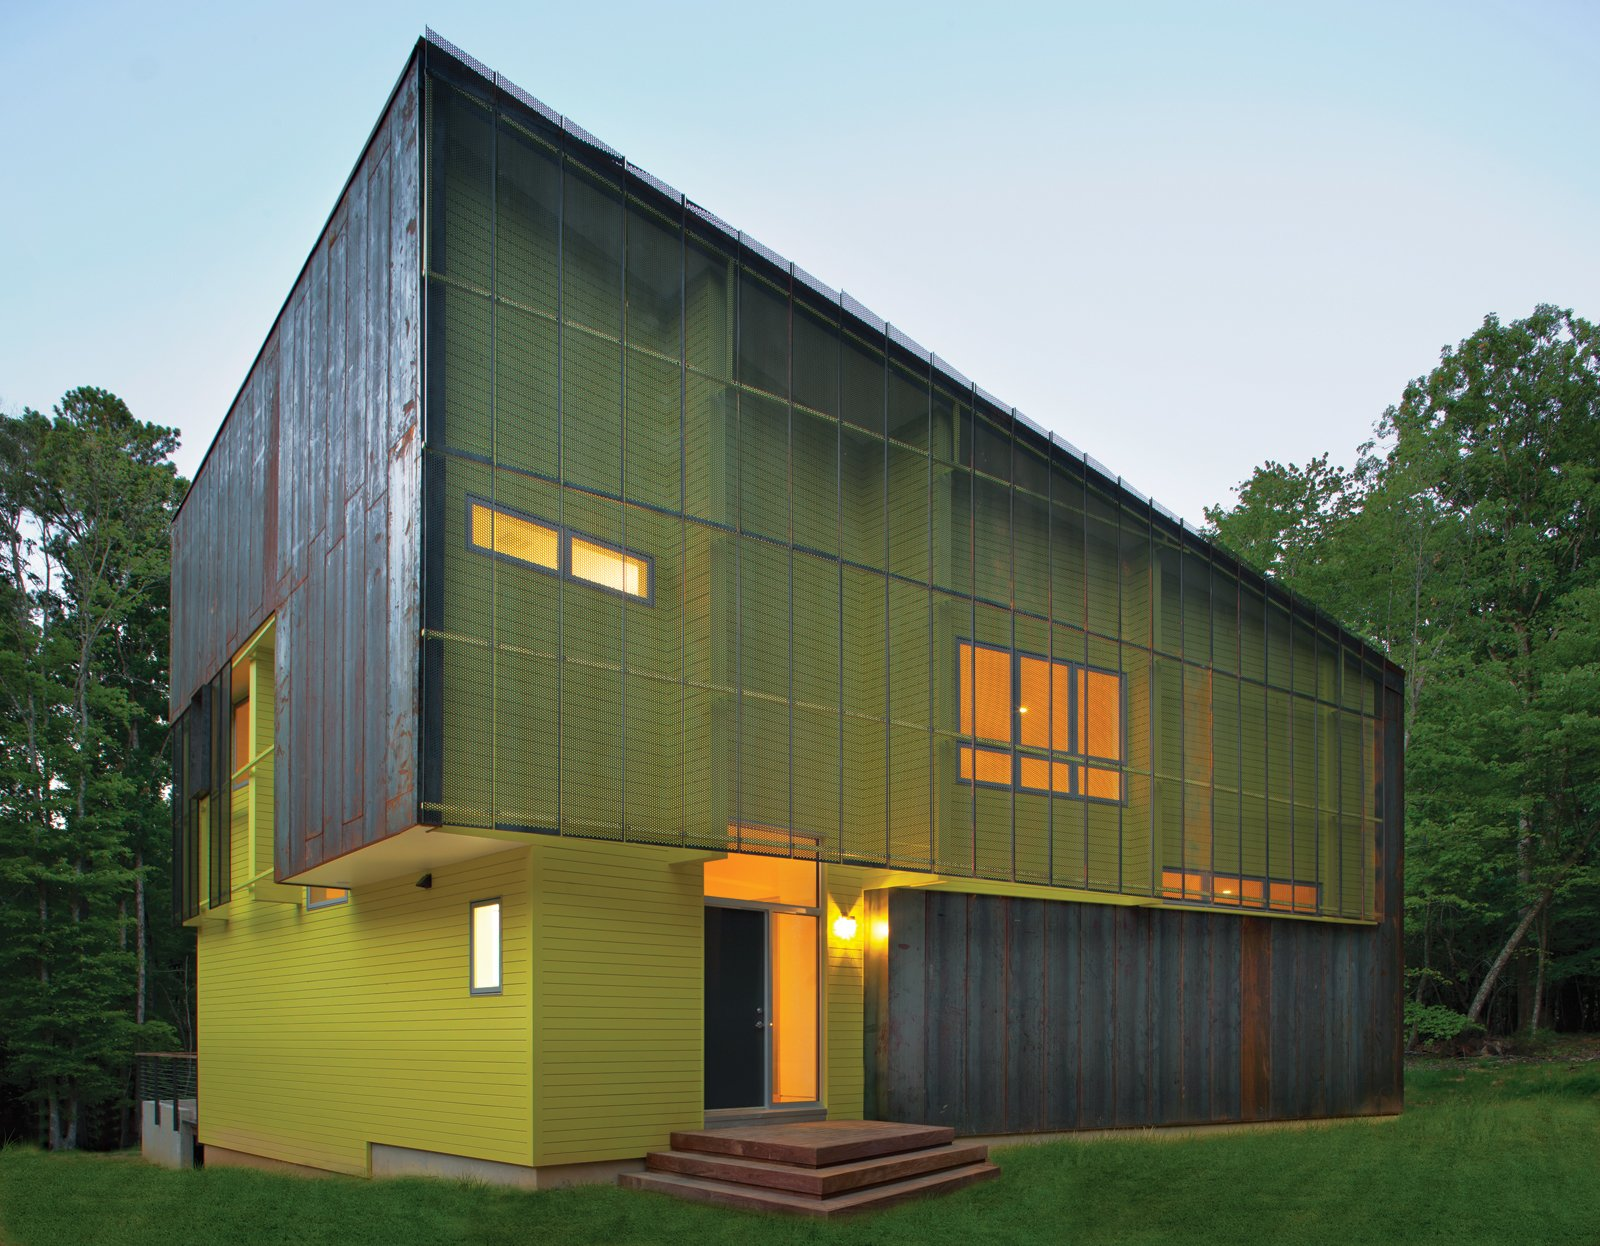 Exterior, Metal Roof Material, House Building Type, Wood Siding Material, Metal Siding Material, and Shed RoofLine Tuned into its sylvan setting, this affordable green home in Hillsborough, North Carolina, is a modern take on the surrounding centuries-old structures. The bright green paint on its facade contrasts with the Cor-Ten steel cladding.  Photo 1 of 2 in Region of Honor